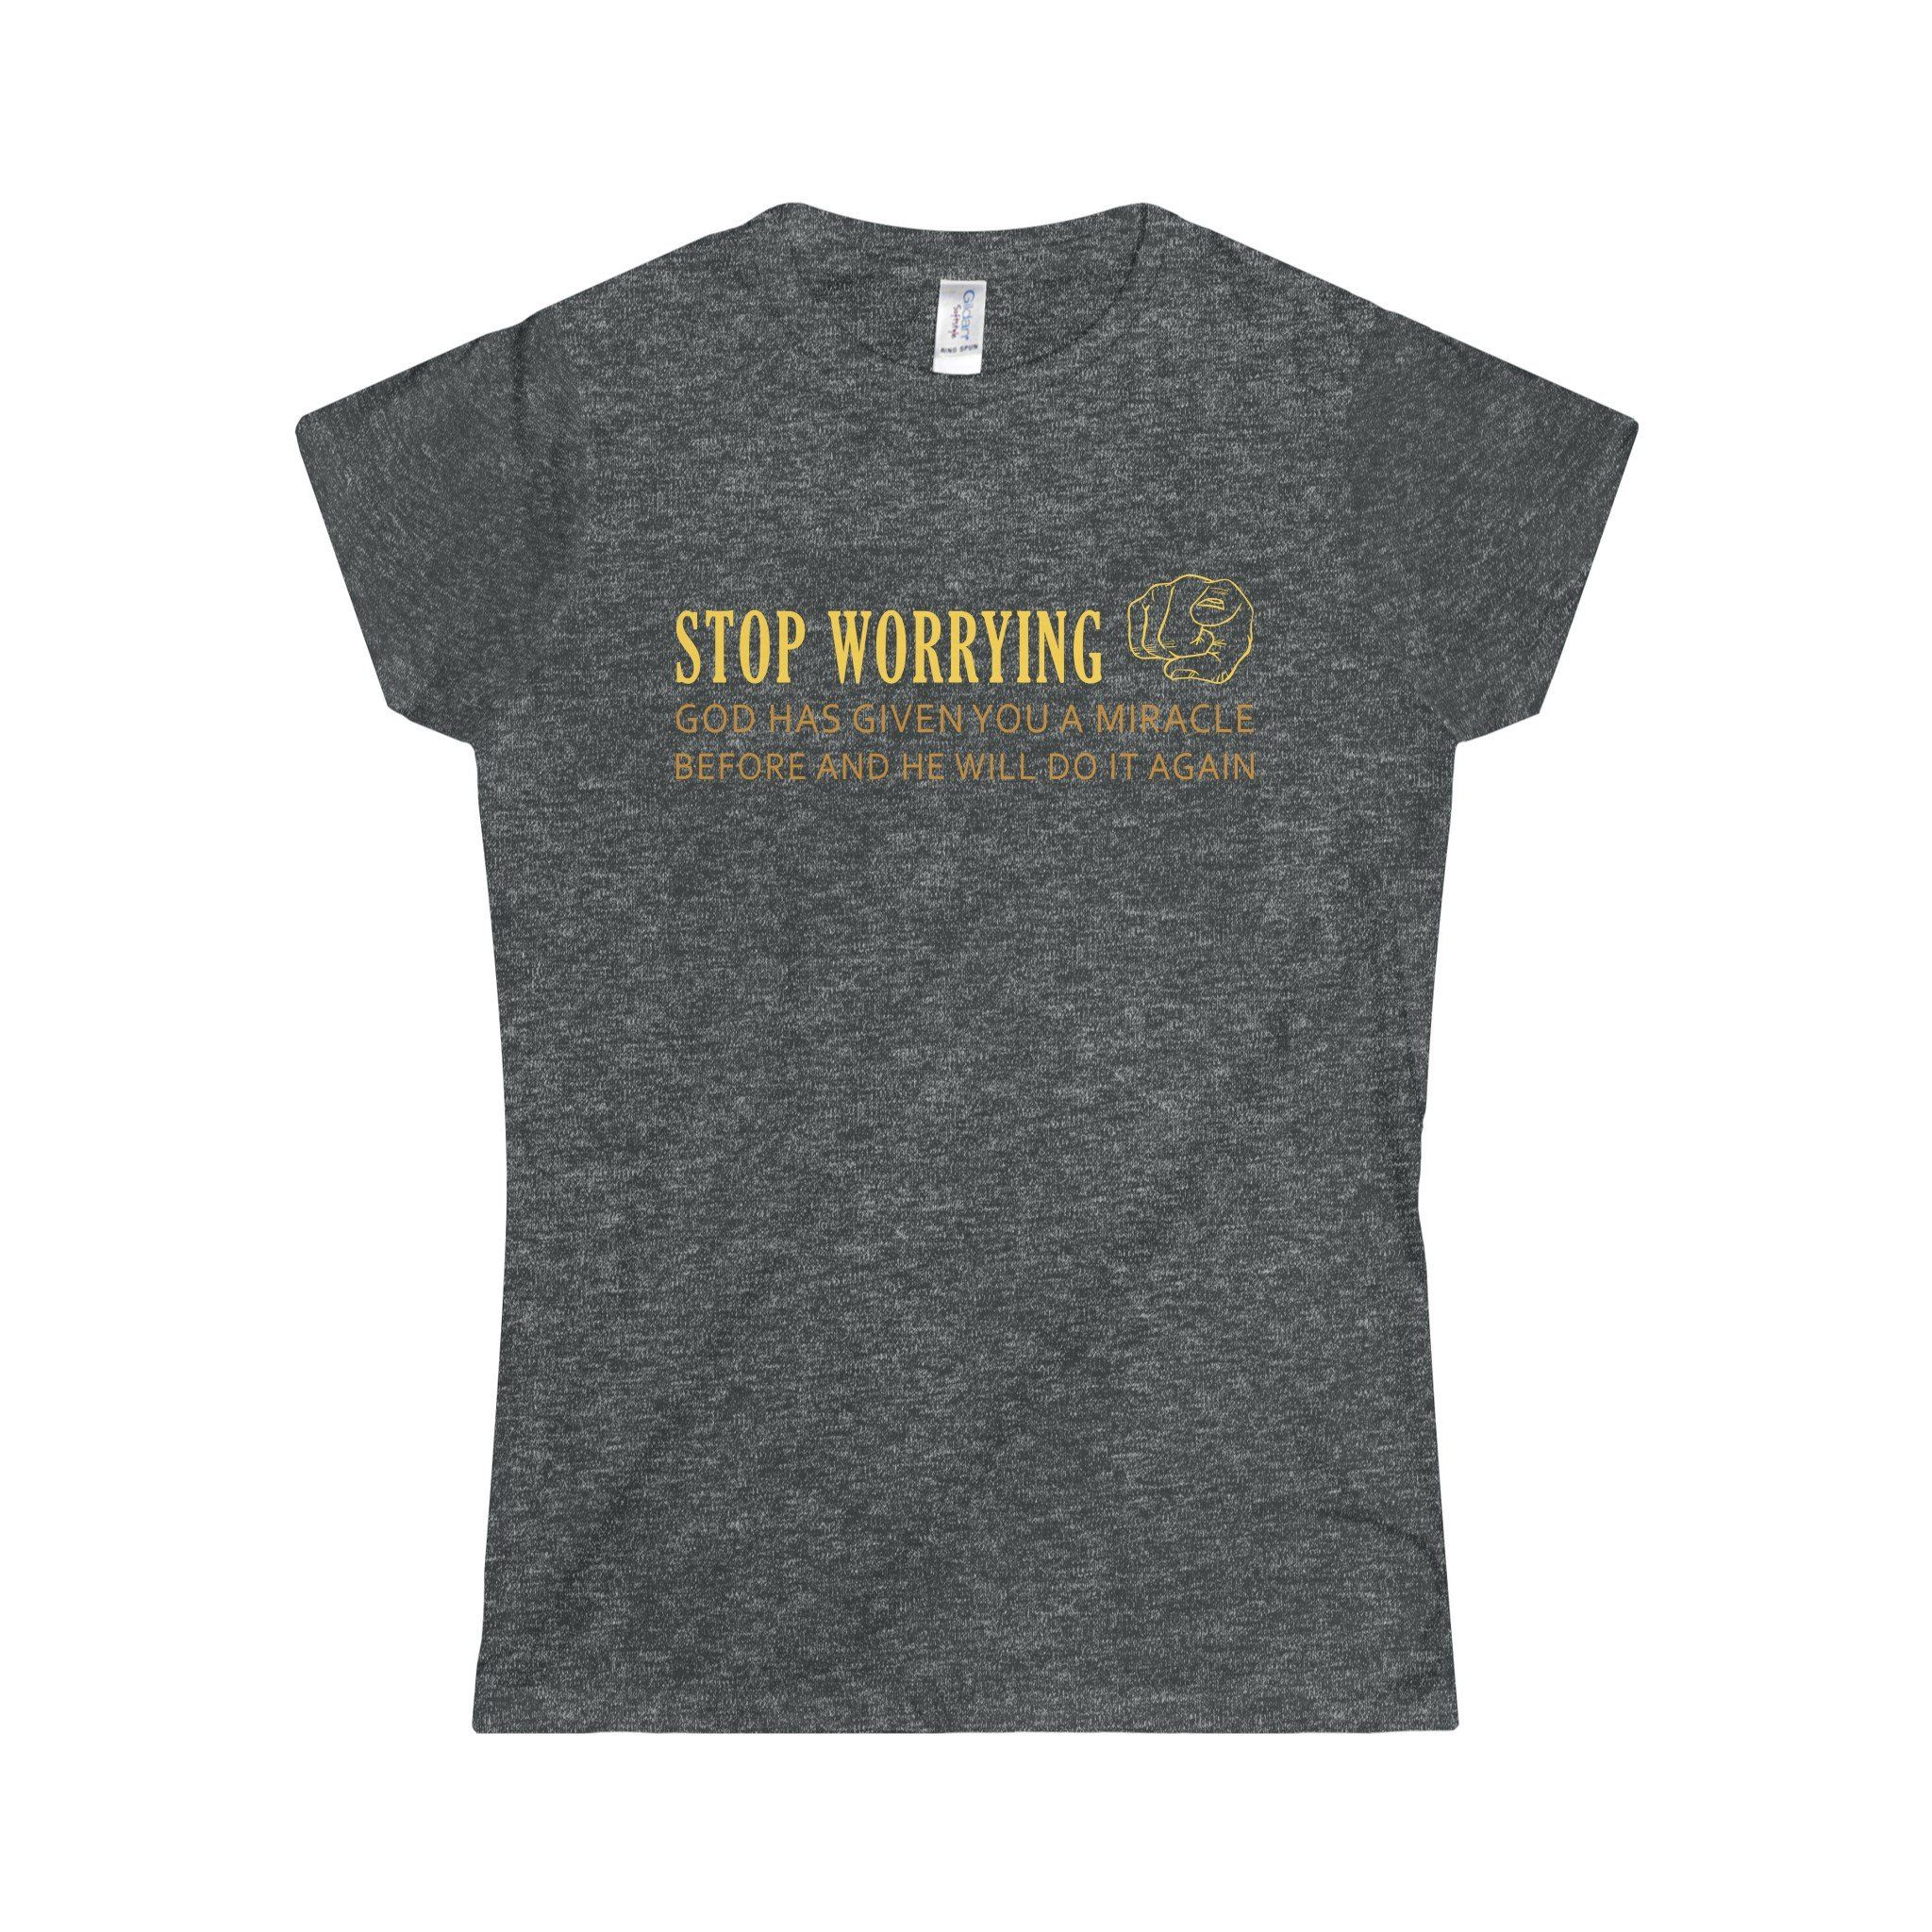 Stop Worrying - Softstyle Women's T-Shirt